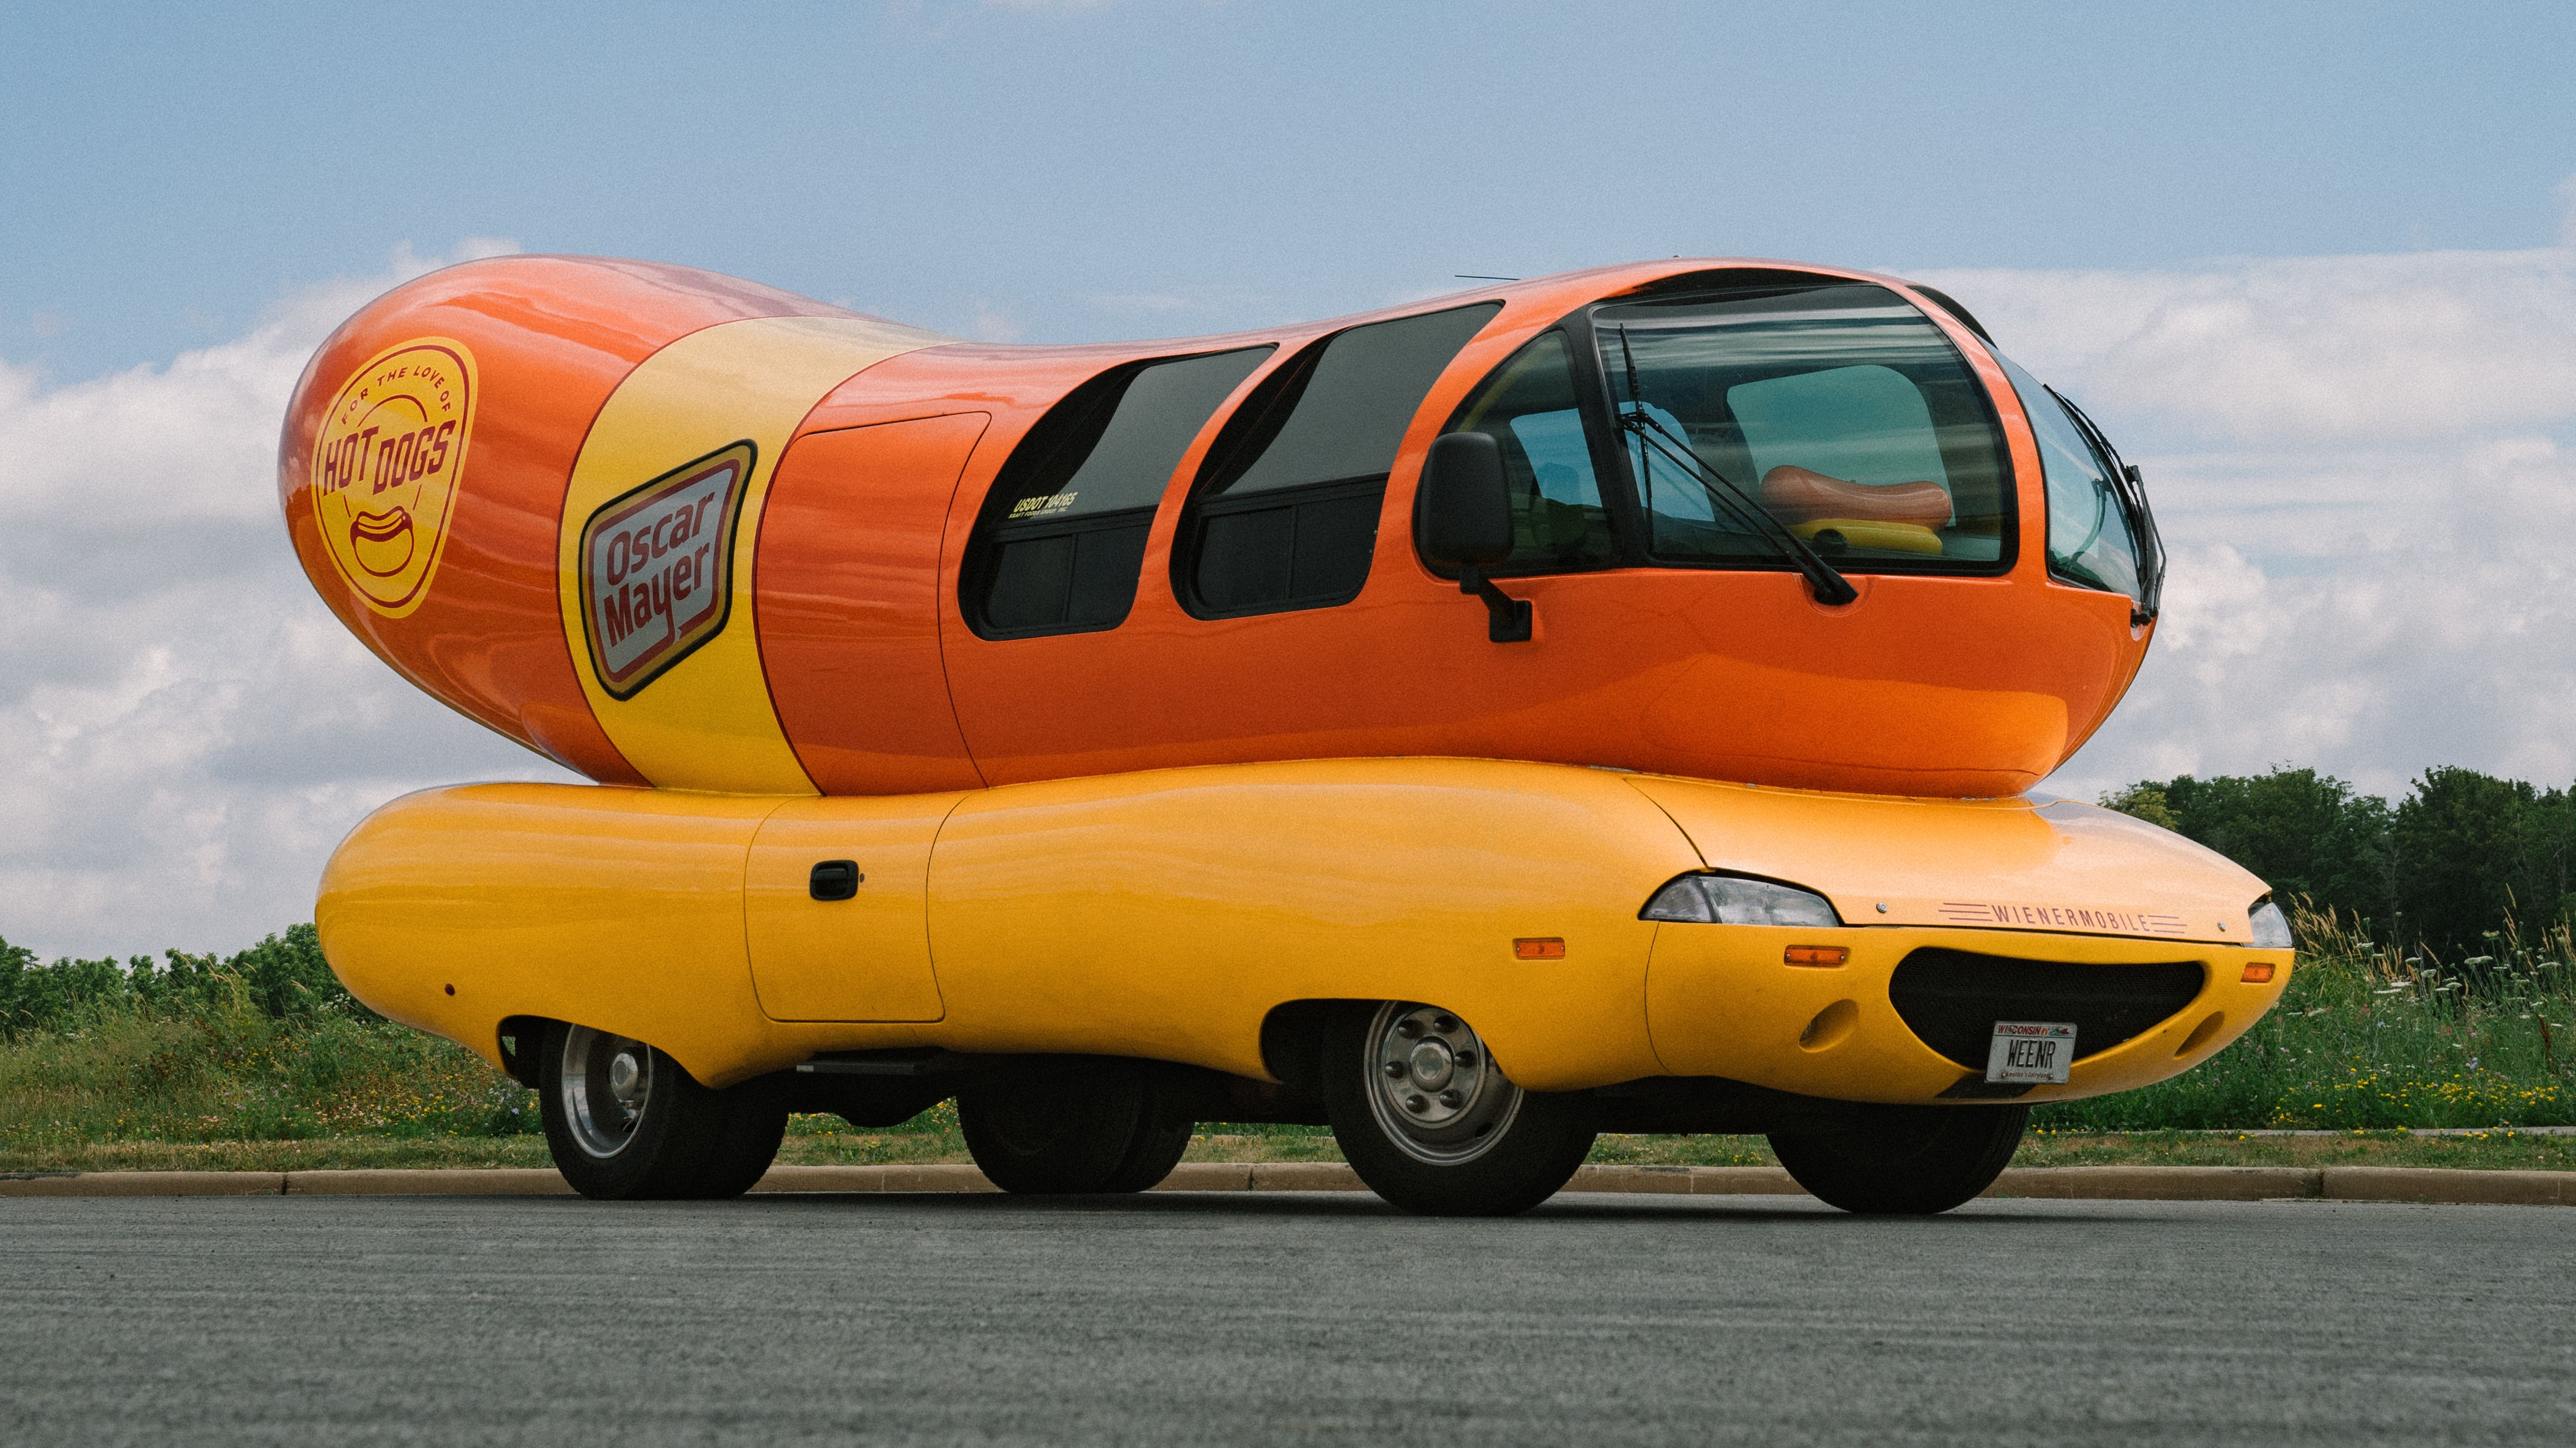 oscar mayer is renting out the wienermobile on airbnb for overnight stays